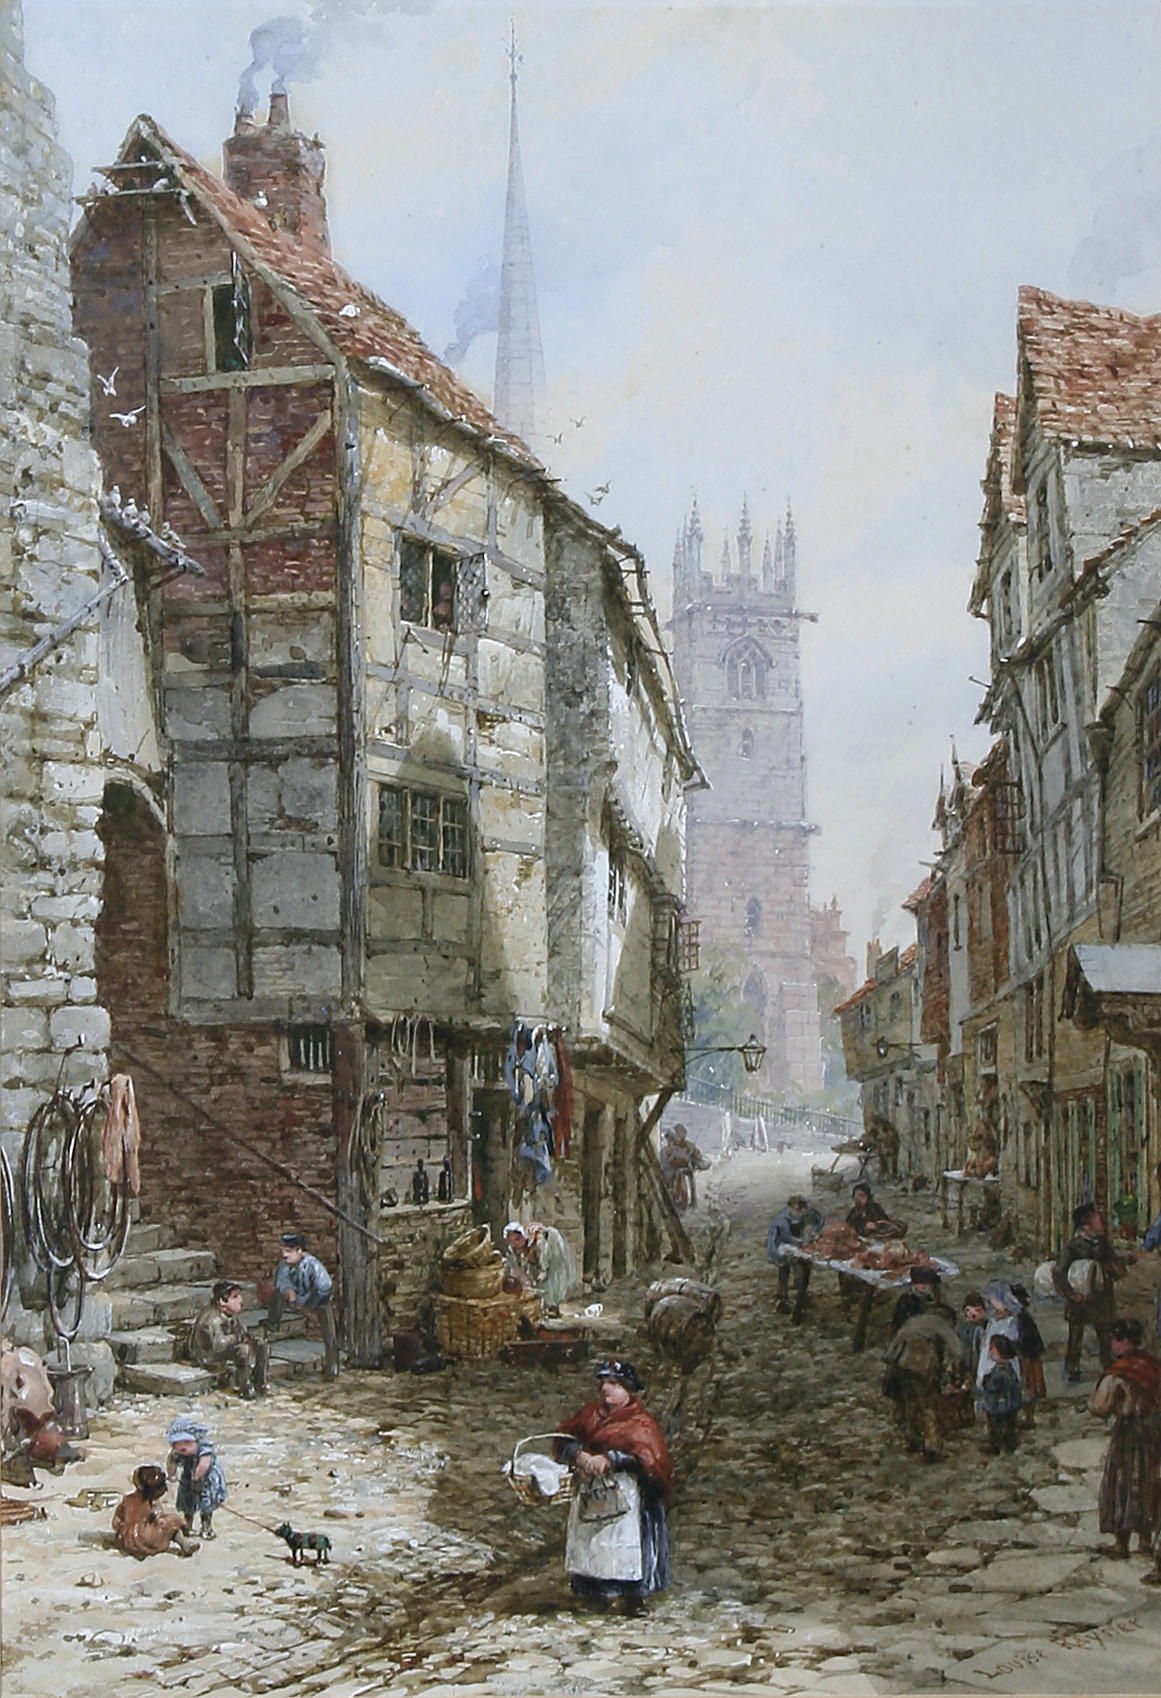 Fish Street, Shrewsbury by Louise Rayner, c.1870-1880